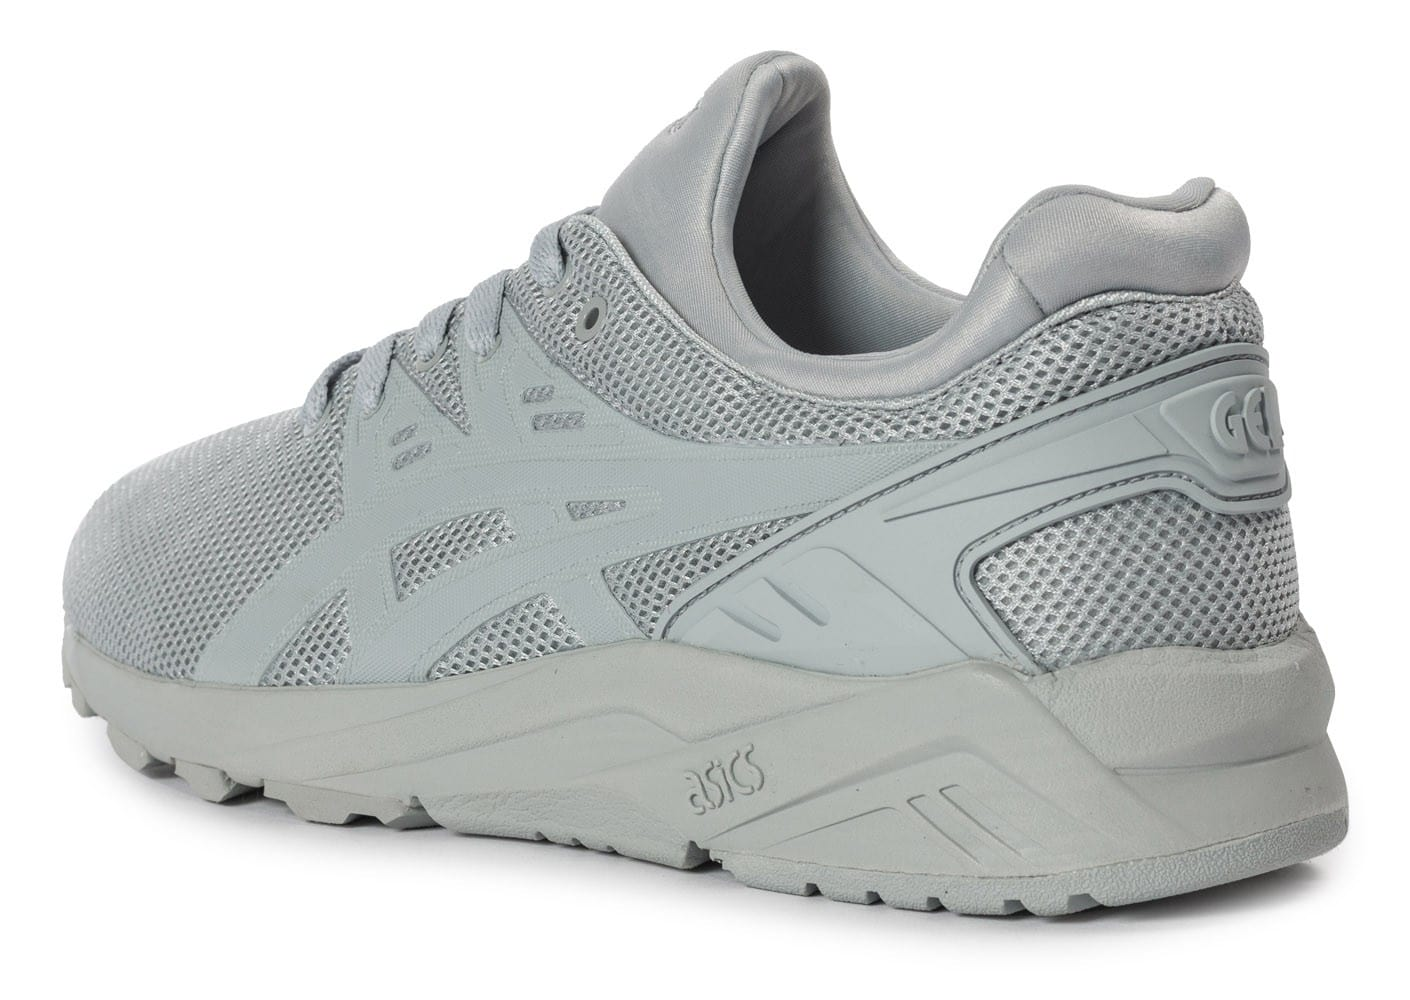 ... Chaussures Asics Gel Kayano Trainer Evo grise vue arrière ...